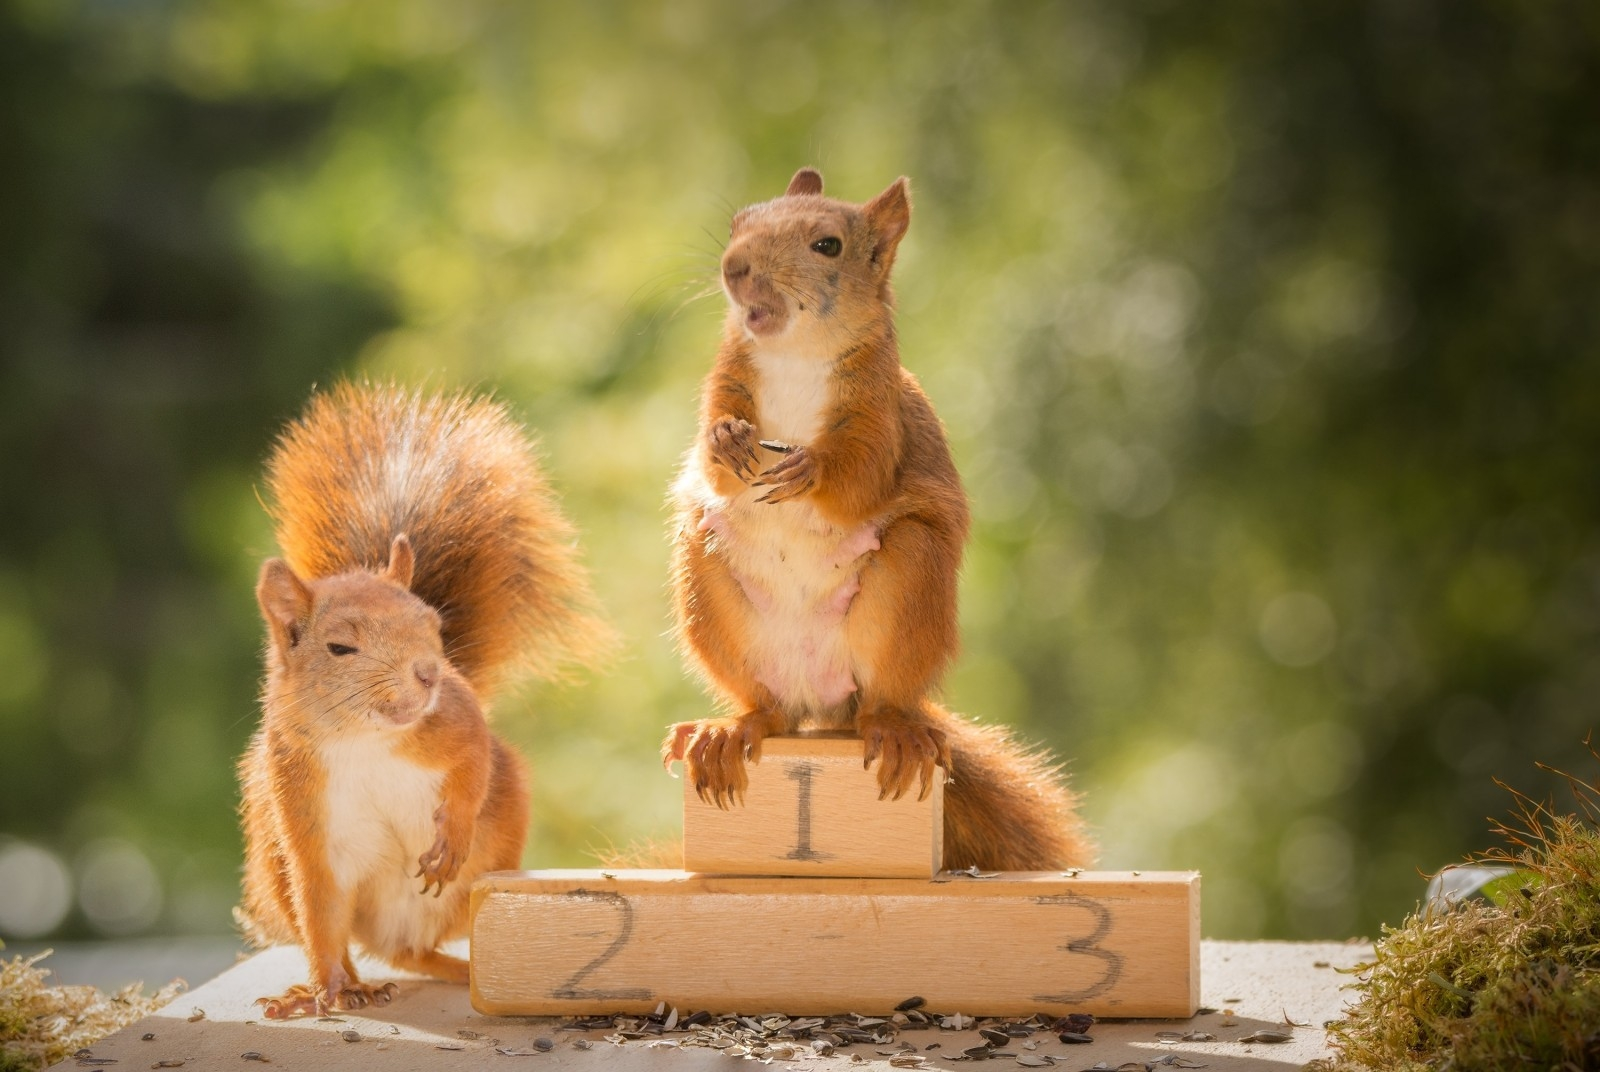 Photographer captures squirrels doing Olympic games